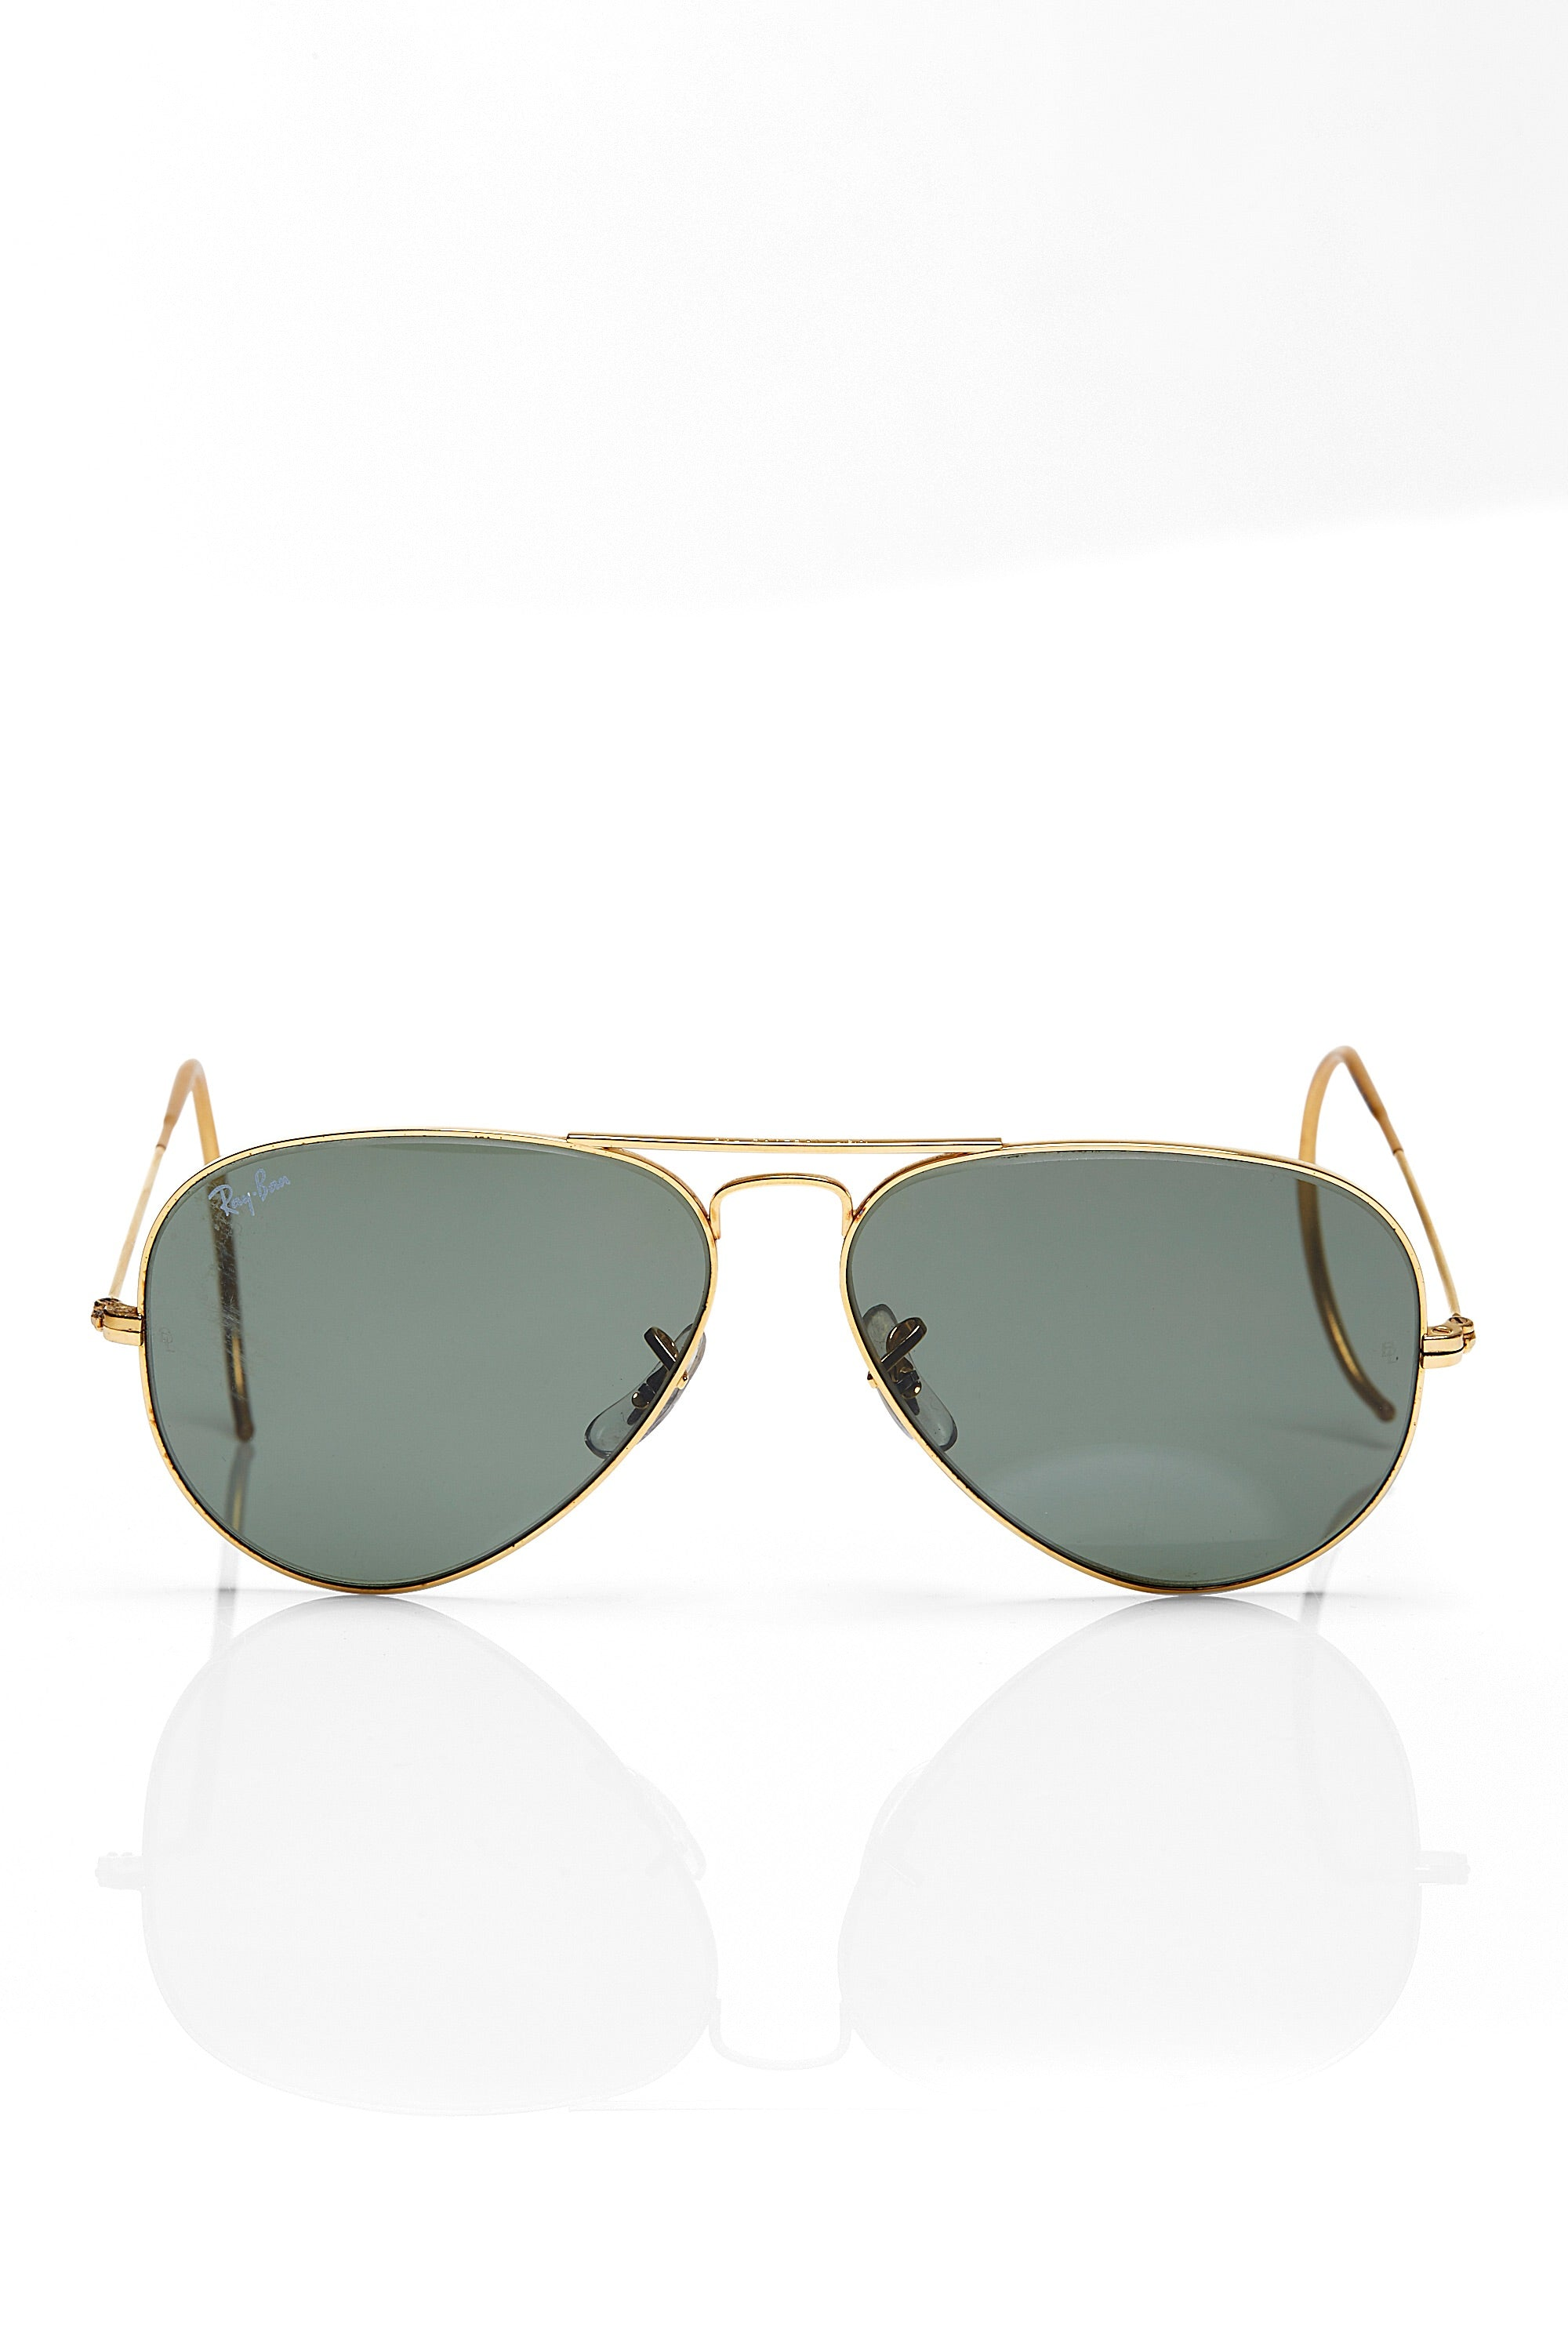 Ray Ban <br> 70's gold frame aviator sunglasses